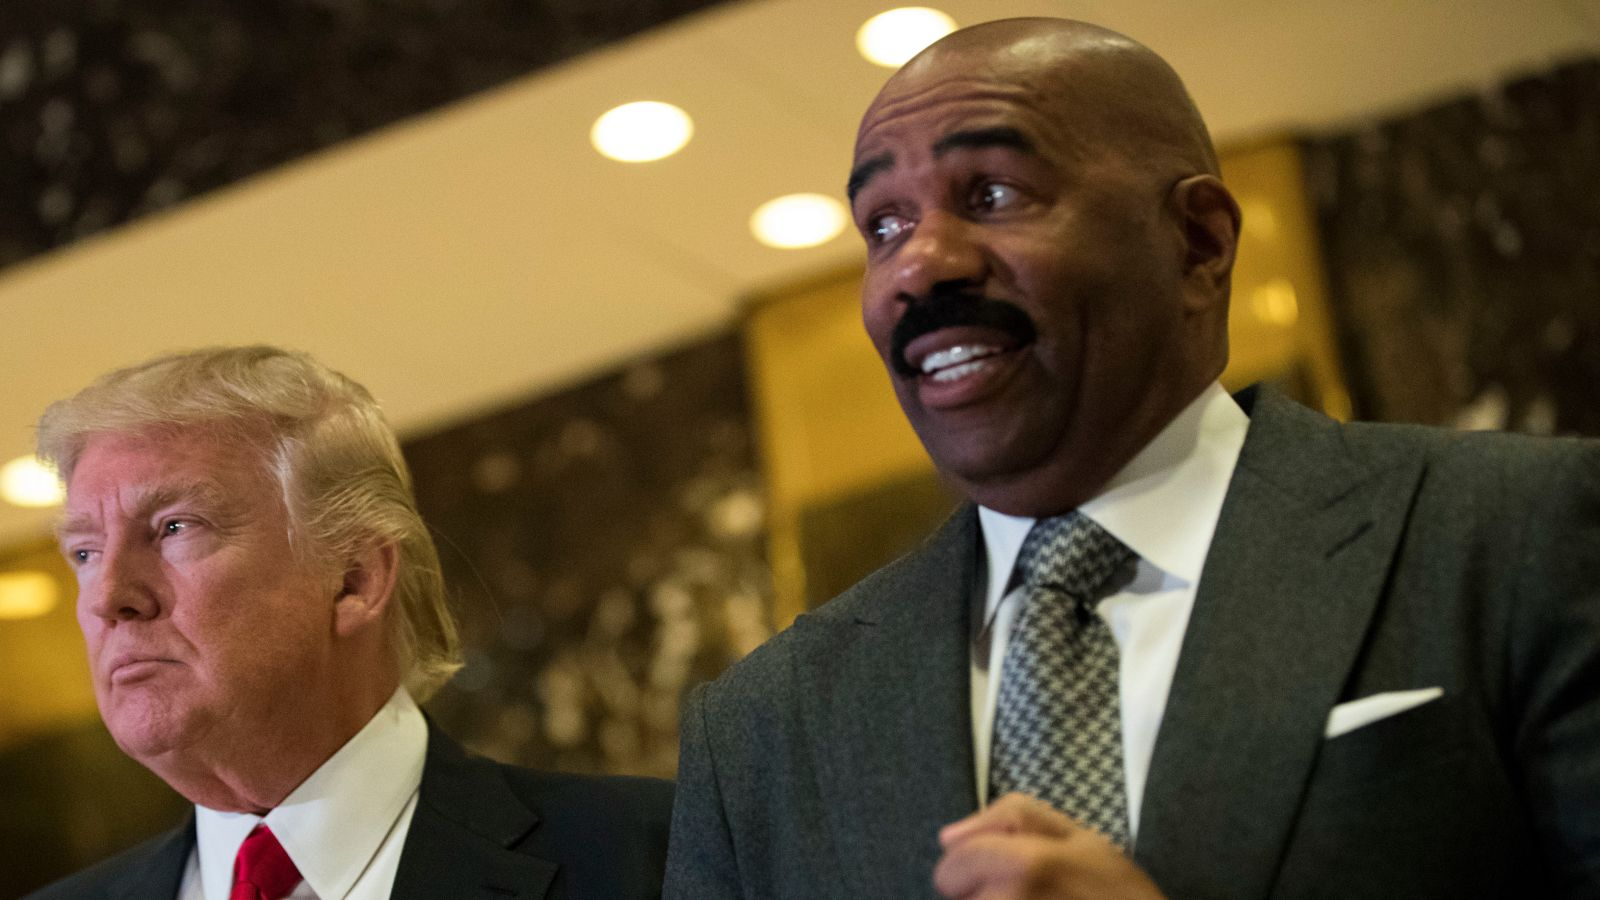 Steve Harvey to Flint, Mich., Resident: 'Enjoy Your Nice Brown Glass of Water'